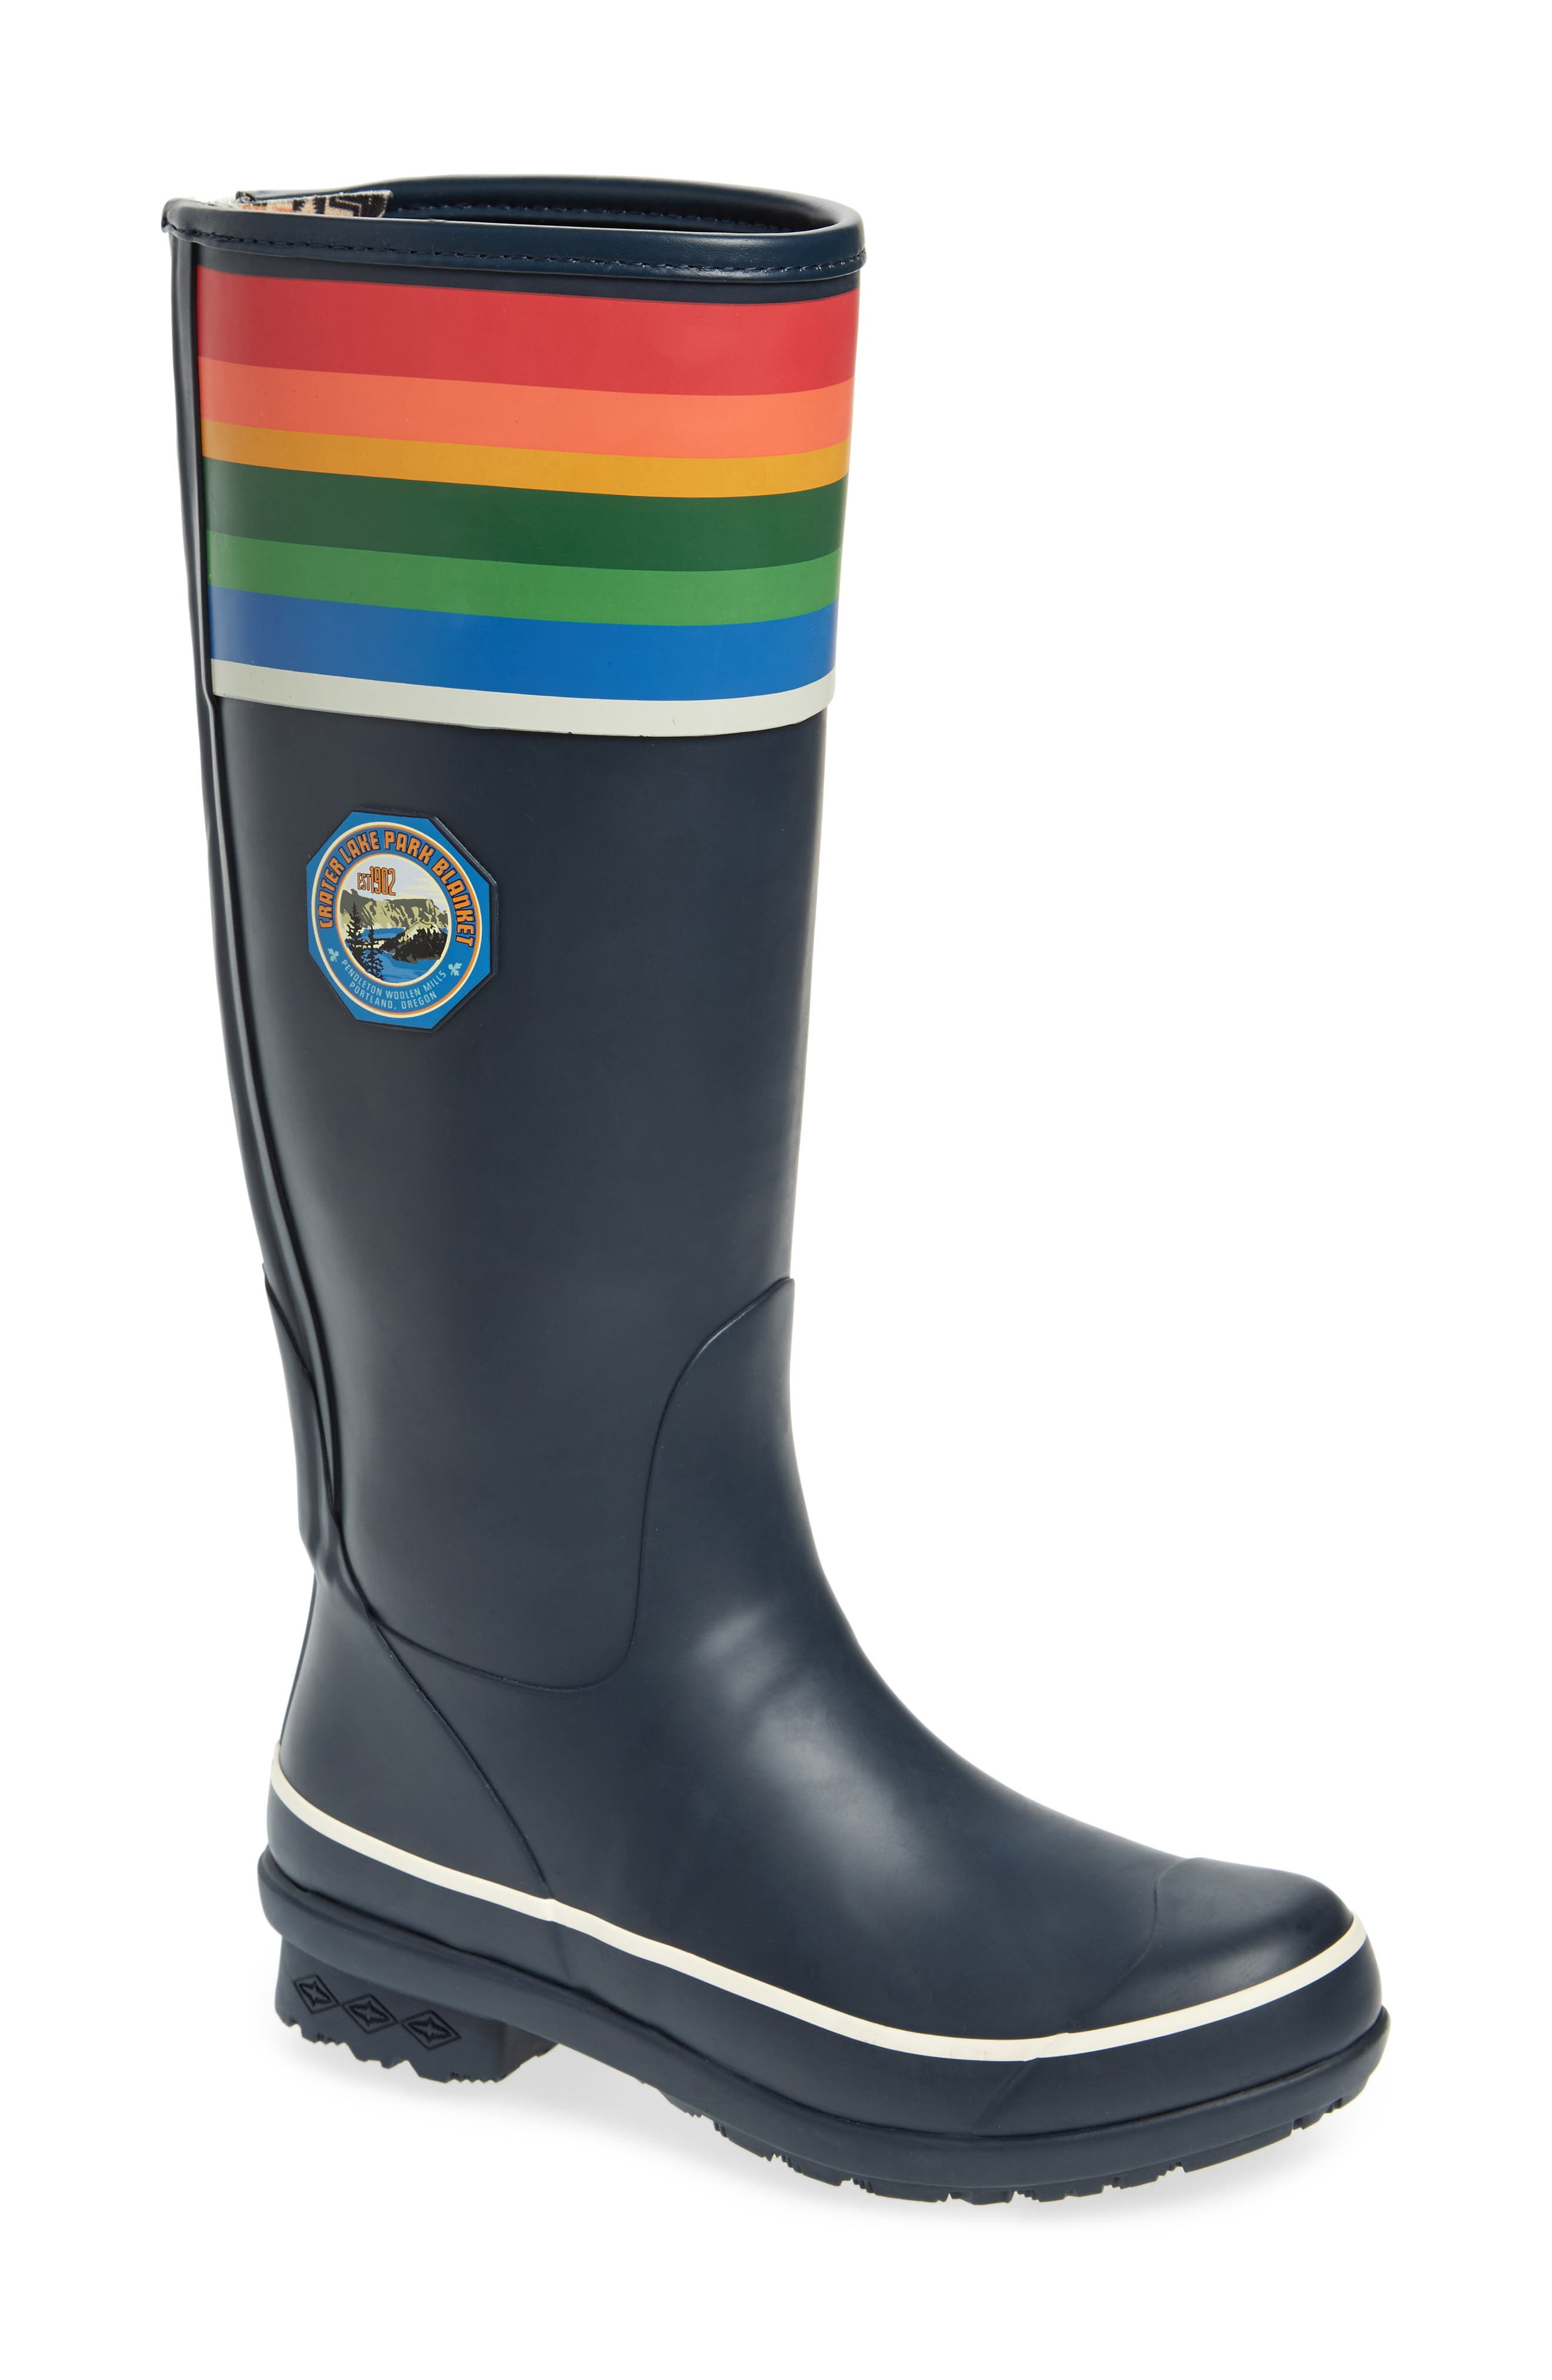 Celebrate the stunning beauty of Crater Lake National park while keeping your feet dry in a waterproof tall rain boot fitted with a Wool-Plus cushioned insole with odor-control technology. Pendleton\\\'s proprietary Mountain Majesty sole features a multidirectional tread pattern for sure-footed traction while an internal shank provides all-day support. Style Name: Pendleton Crater Lake National Park Tall Rain Boot (Women). Style Number: 5504743.